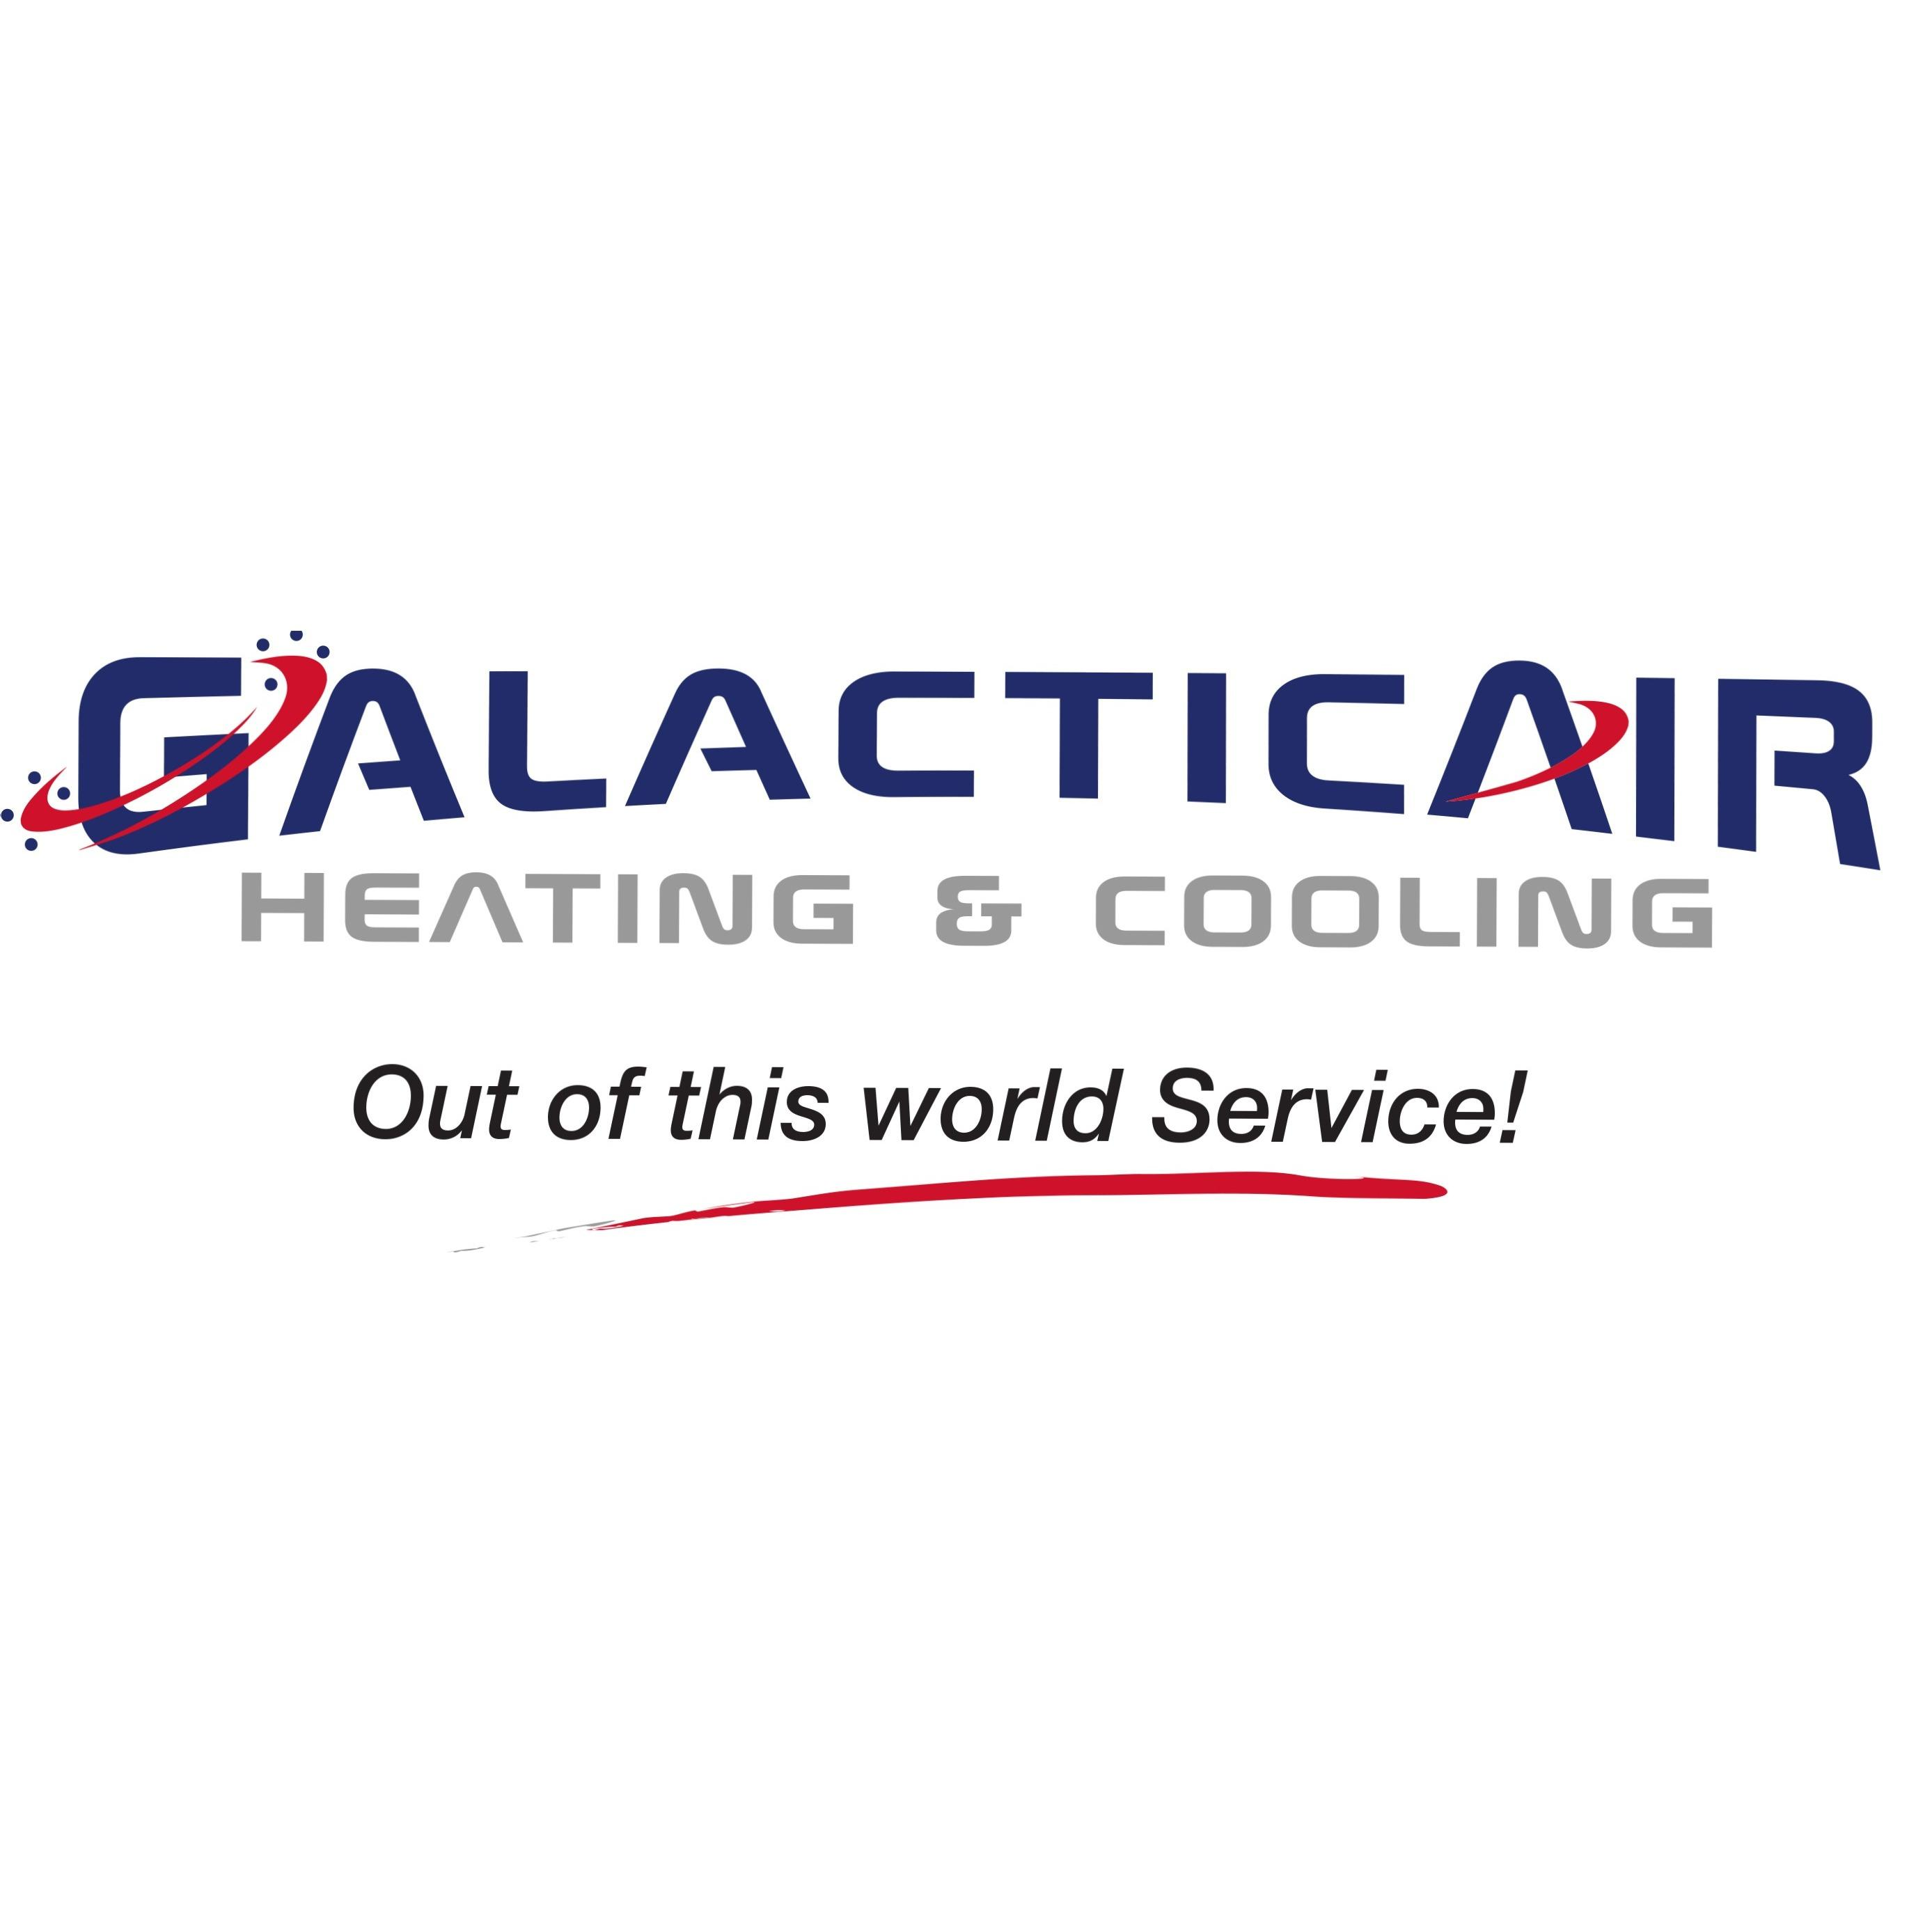 Galactic Air Heating & Cooling